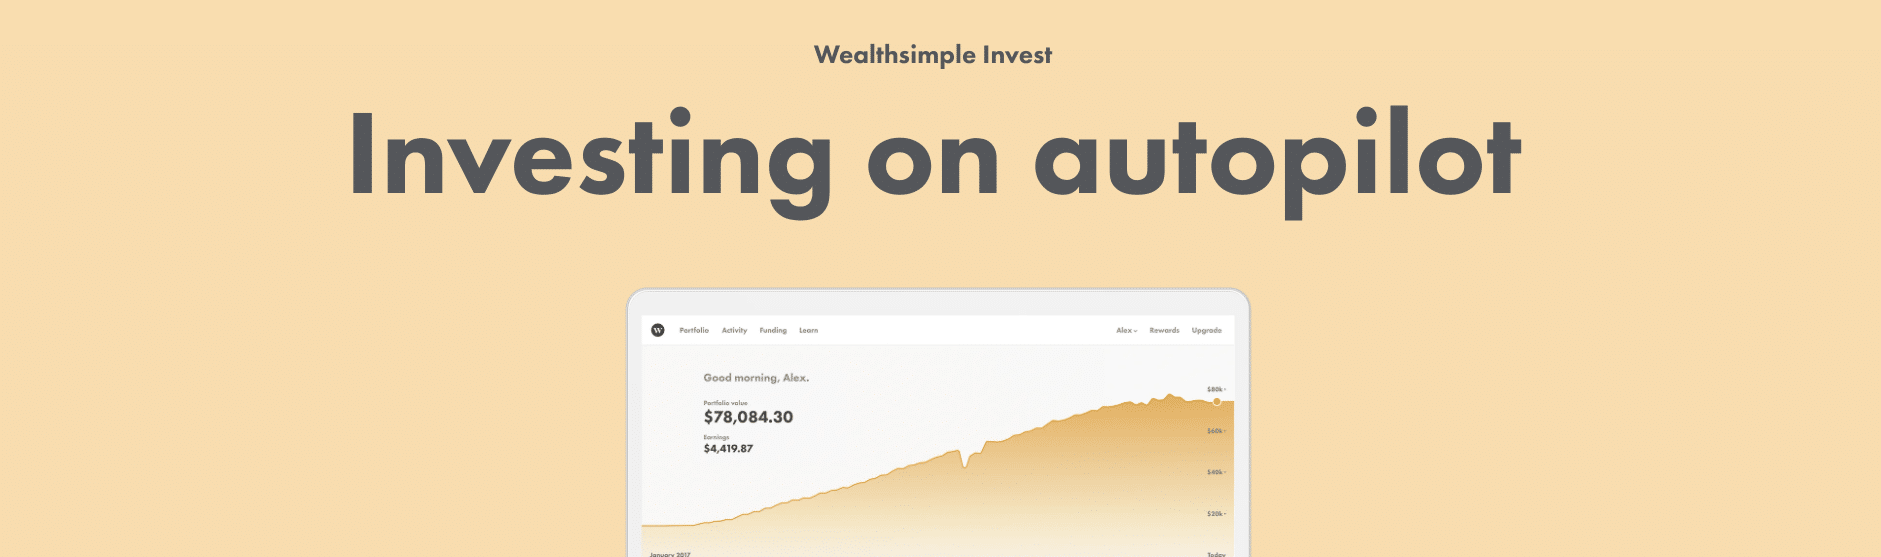 Wealthsimple investing